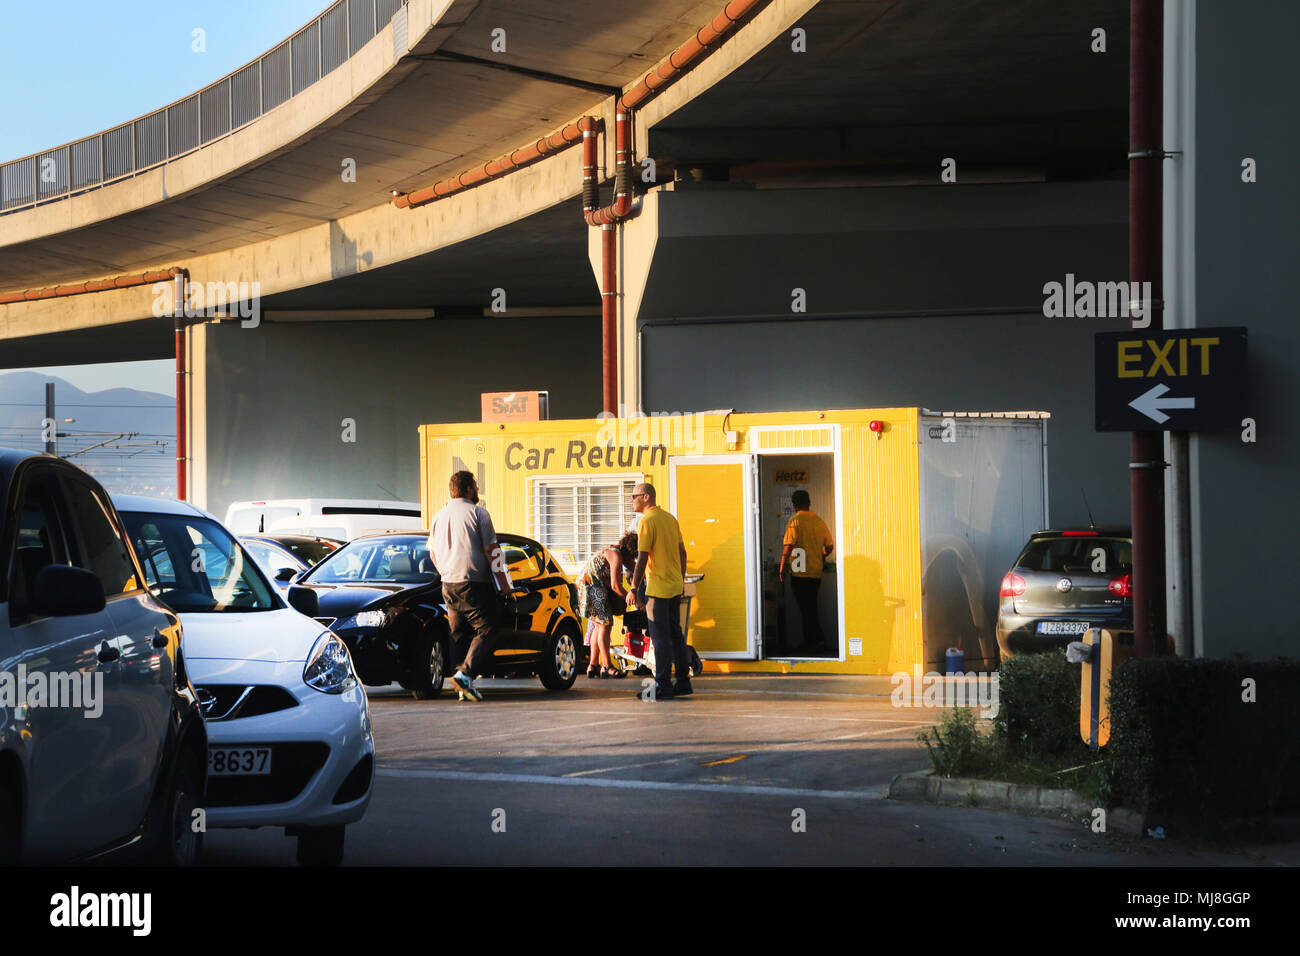 Car Rental under Flyover at Athens Airport Greece - Stock Image